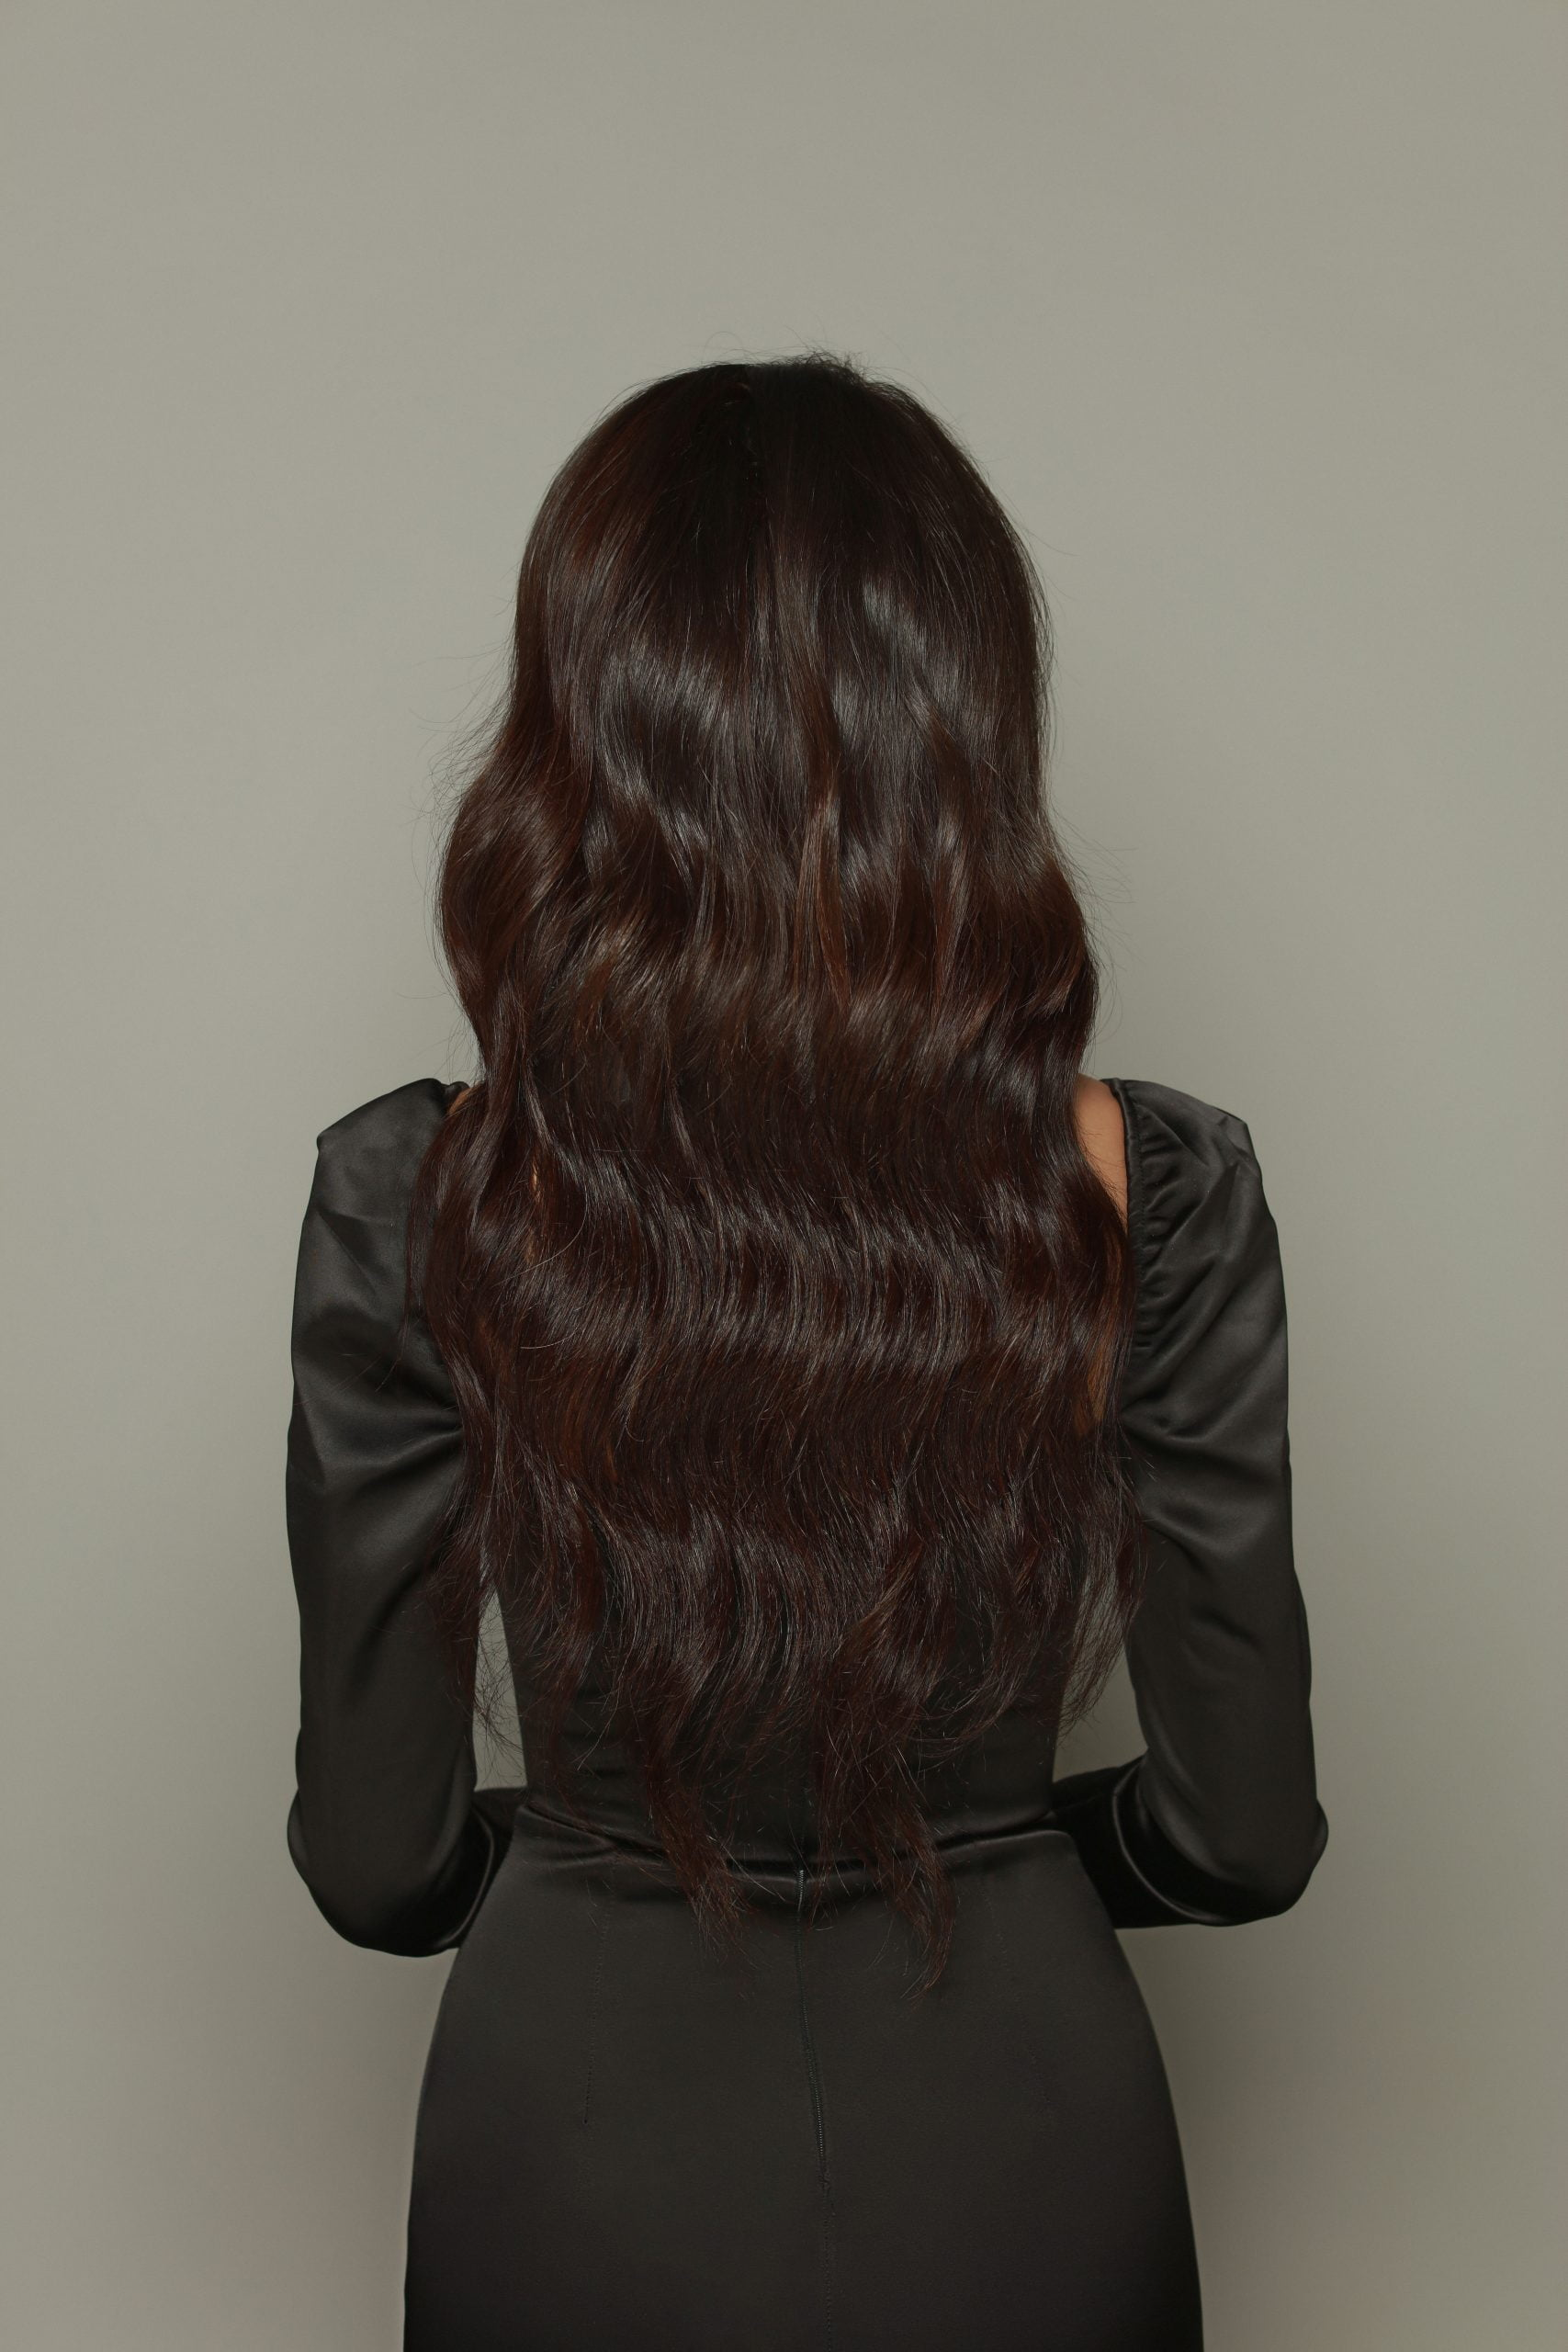 With Izabelle Hair Extensions